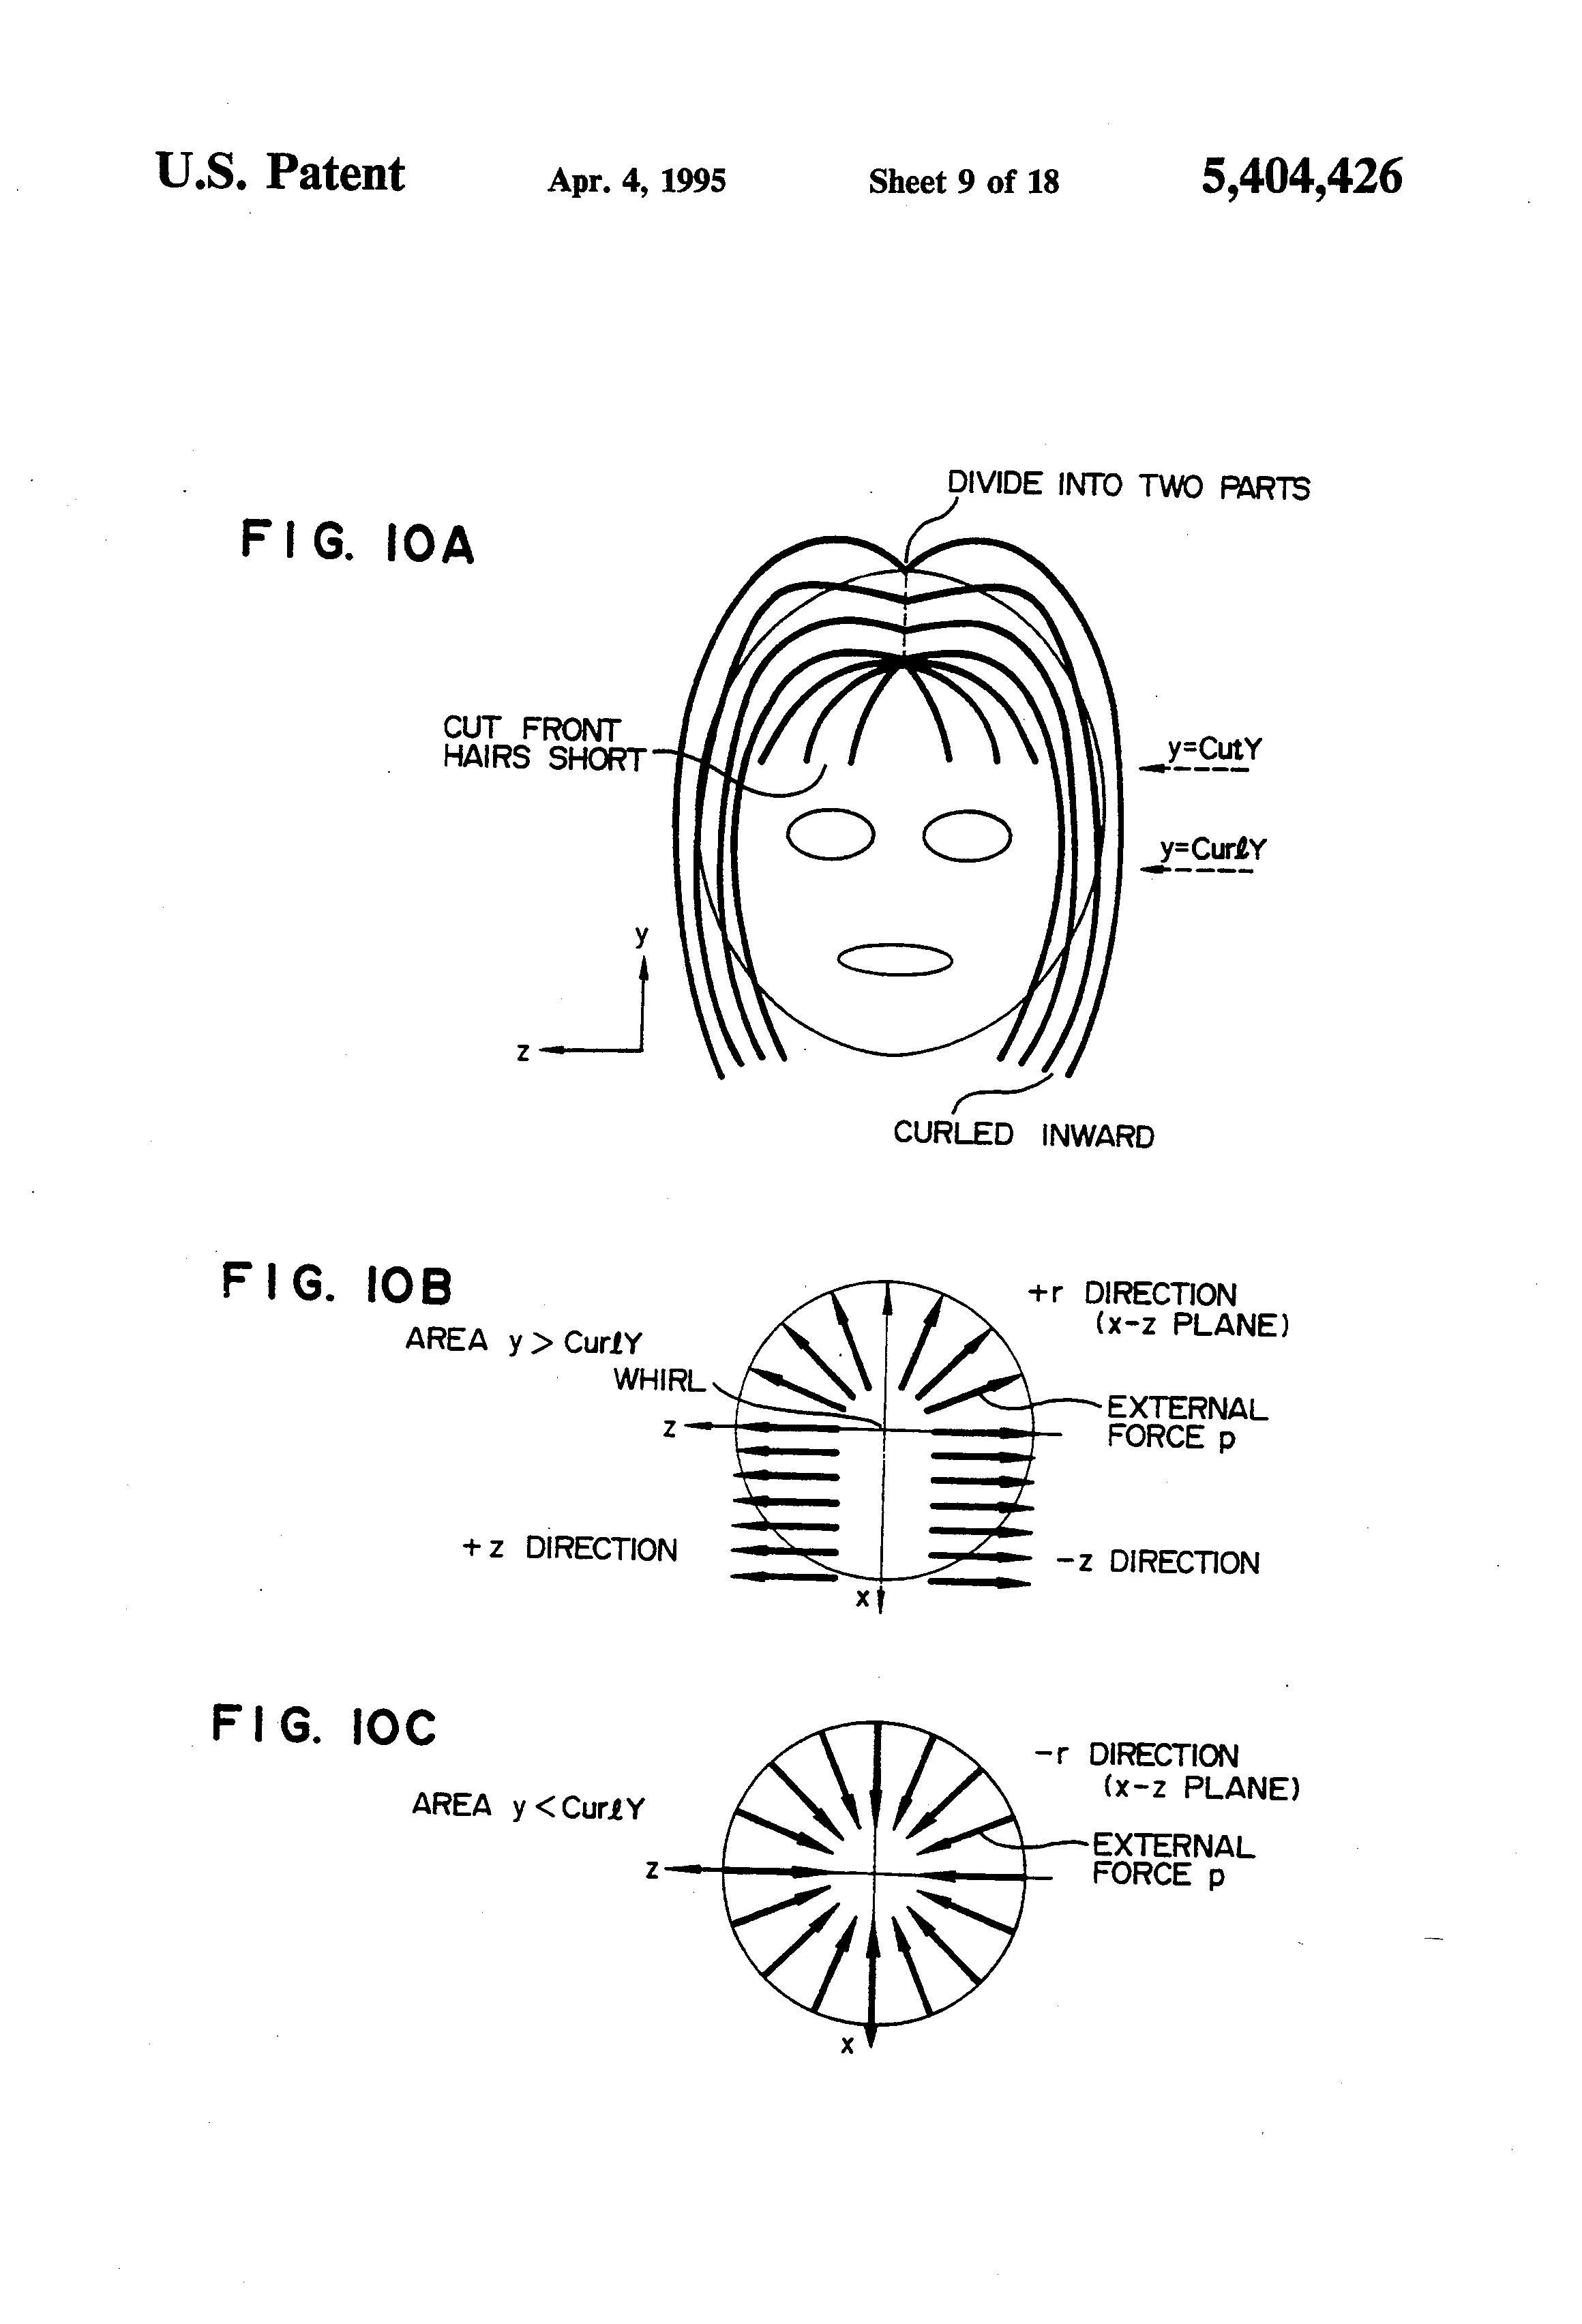 90 degree haircut state board diagram